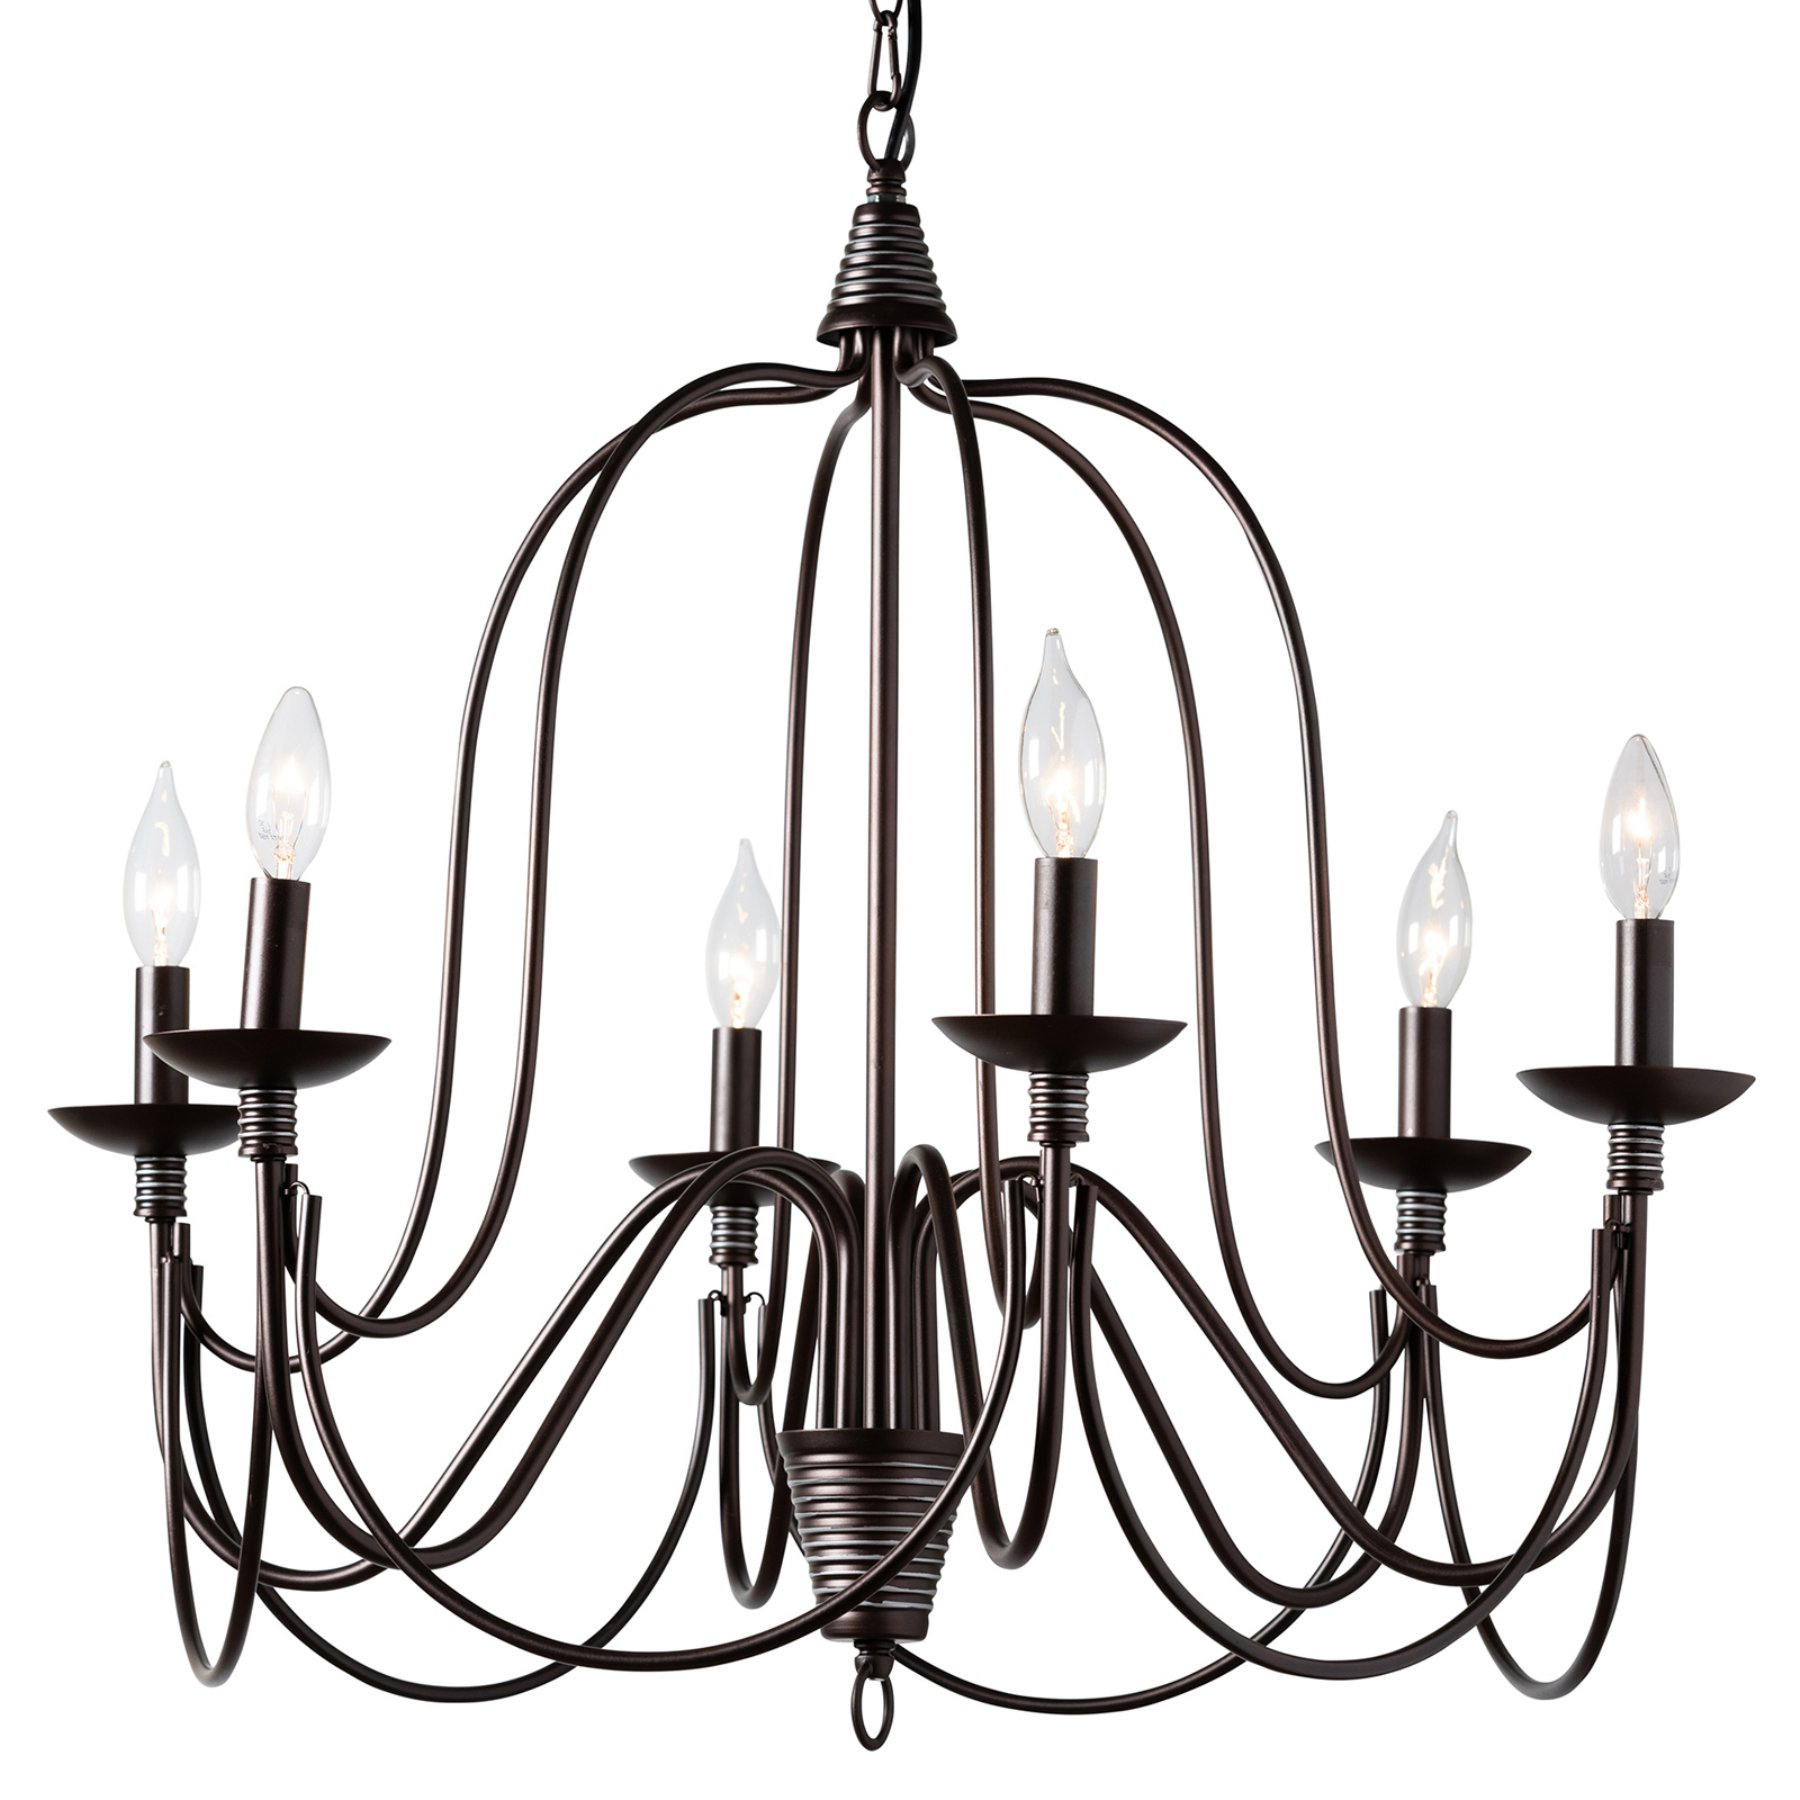 Baxton Studio Palmira Even3680 6 Light Chandelier | Products intended for Watford 6-Light Candle Style Chandeliers (Image 3 of 30)